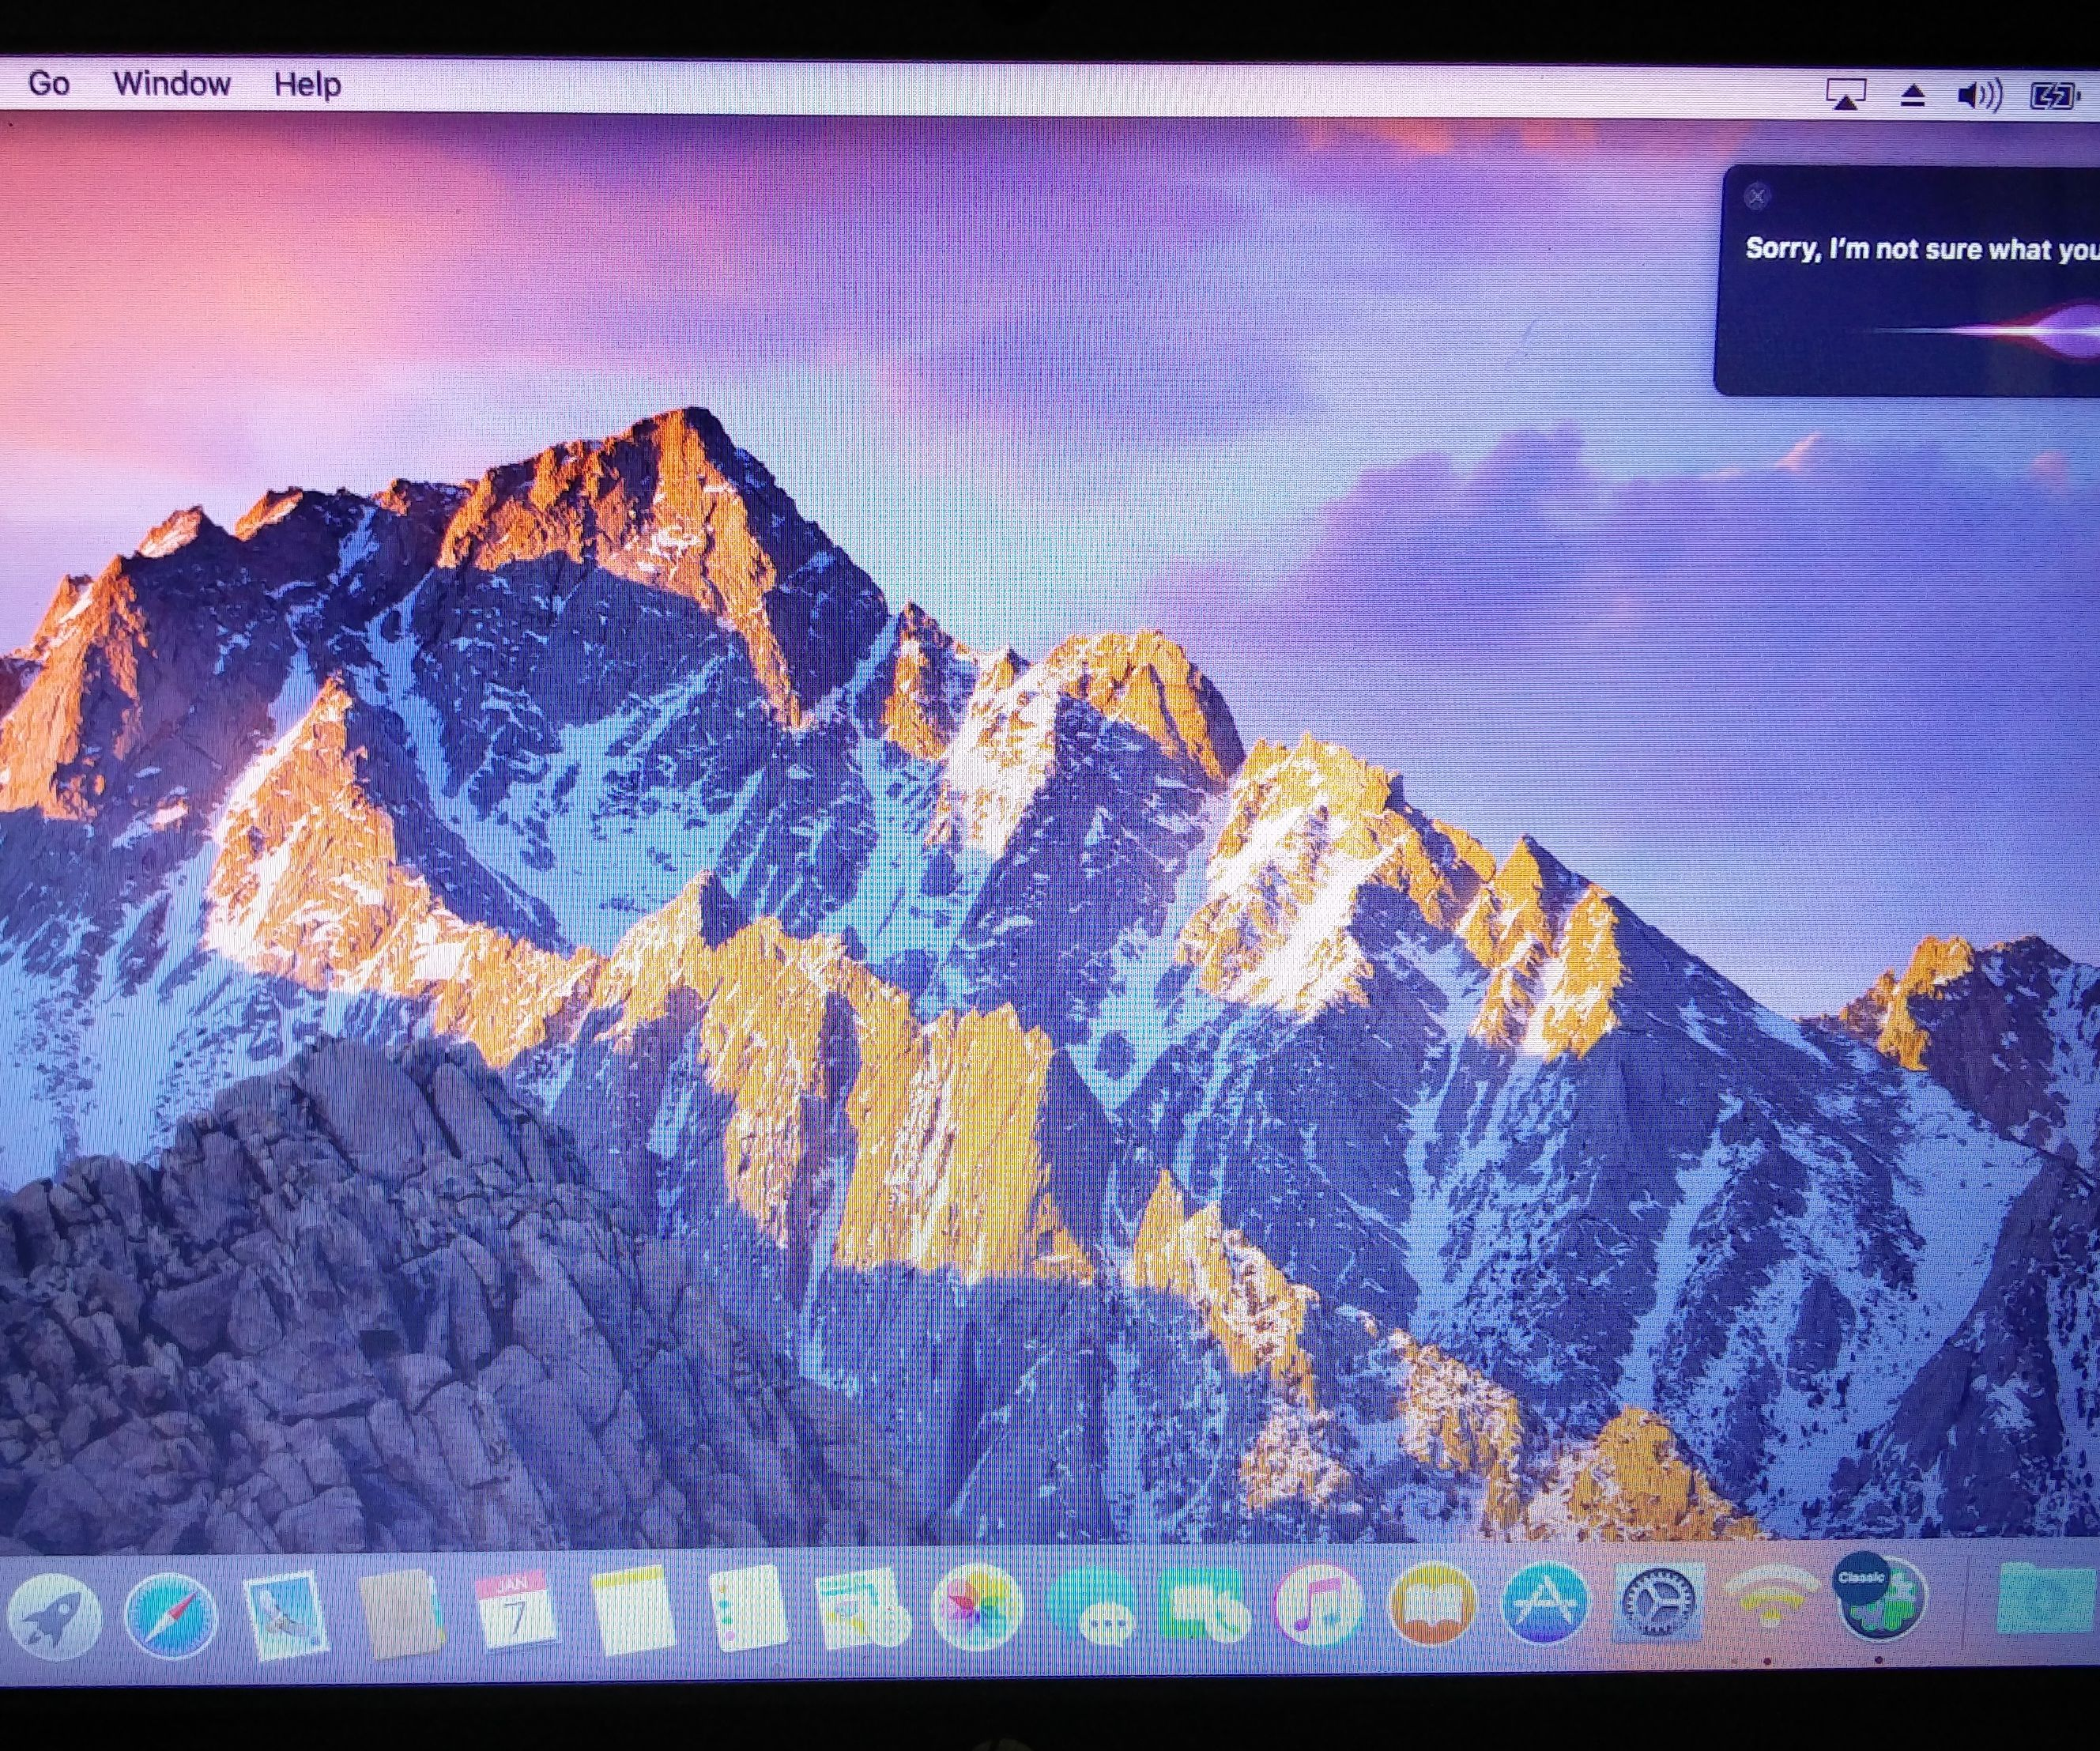 Install Mac OS X Sierra in PC